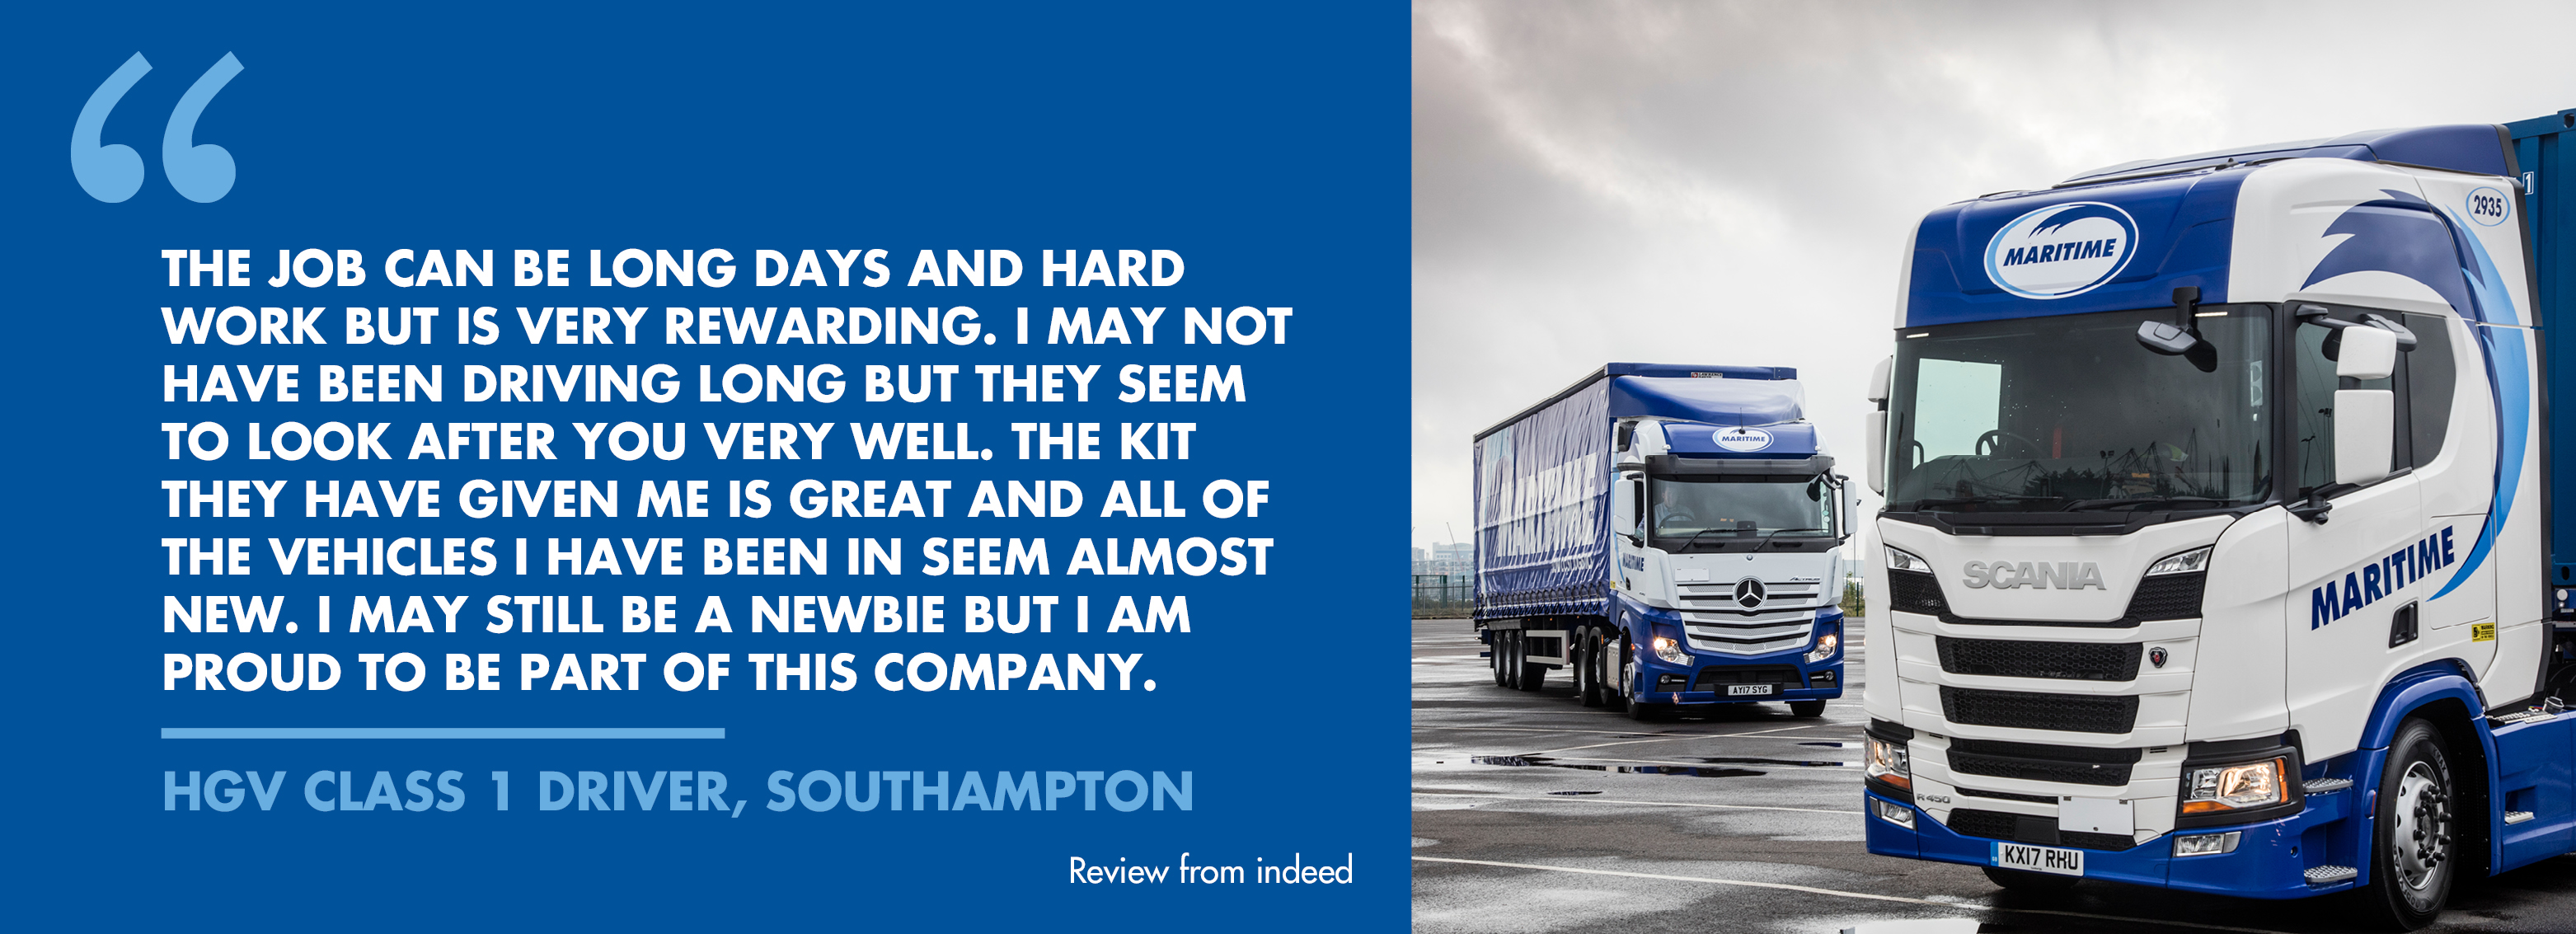 Southampton Indeed Review